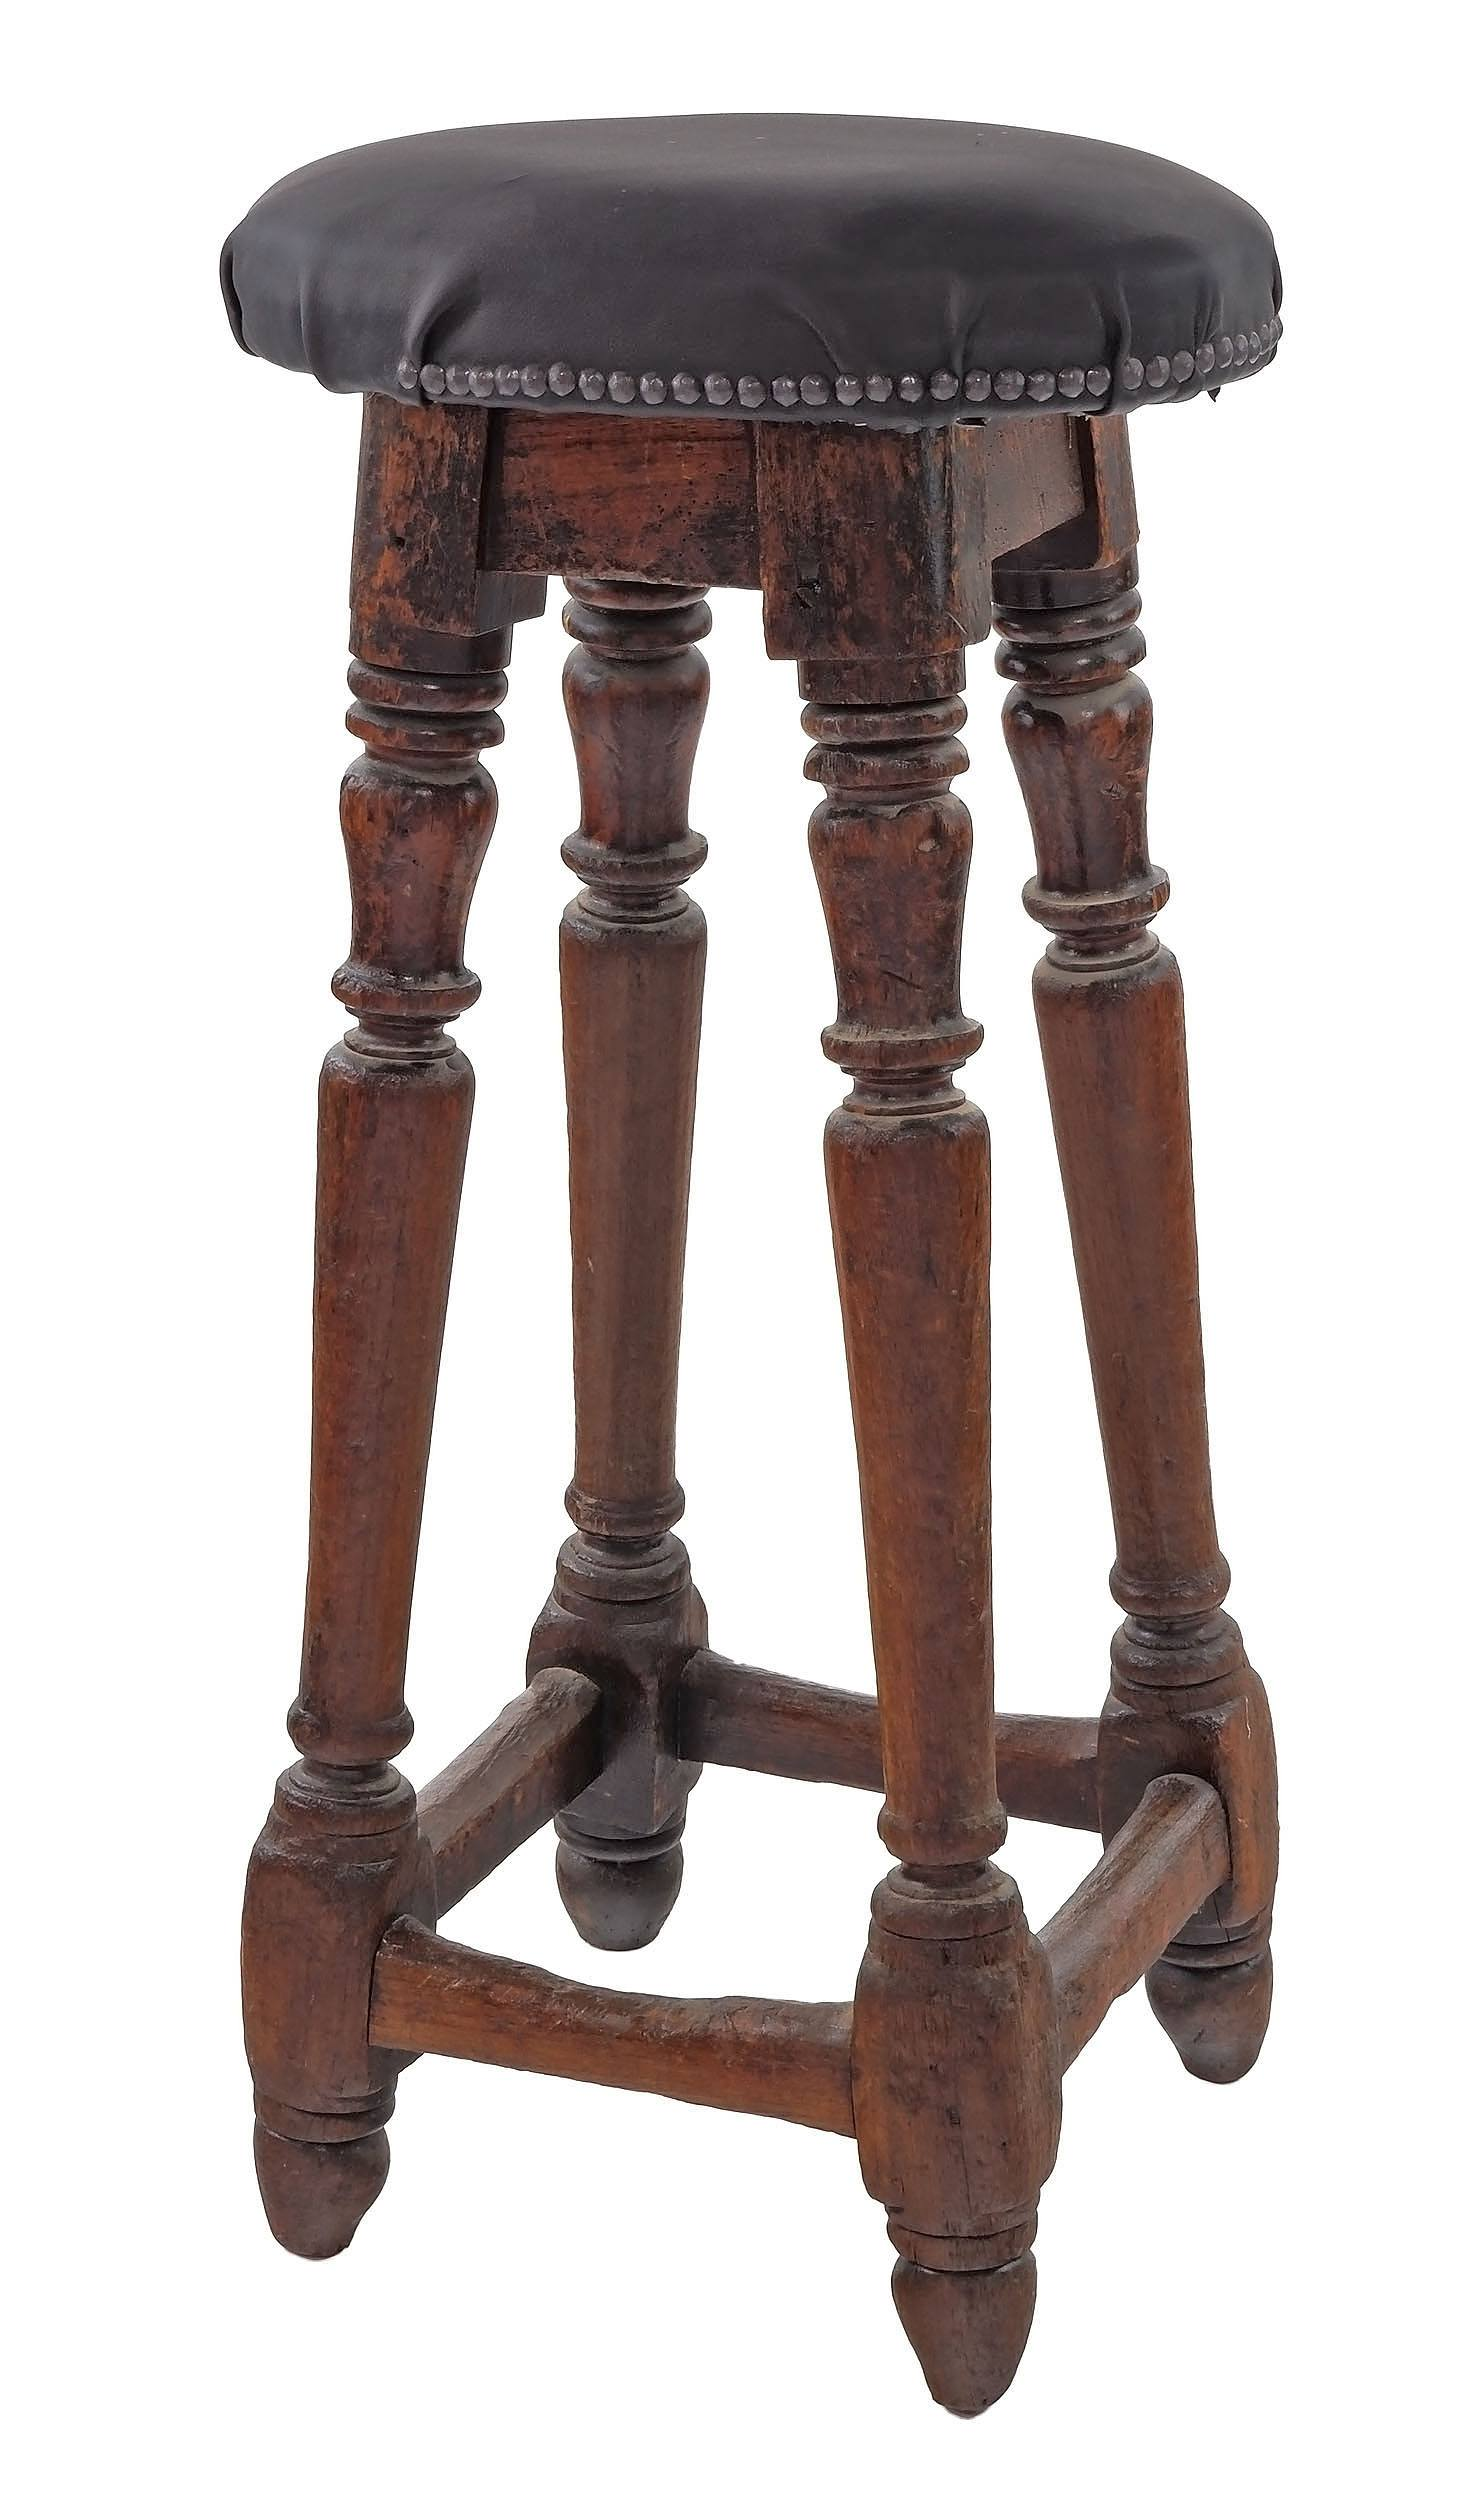 'Rare Australian Colonial Cedar Stool with Later Leather Upholstery'